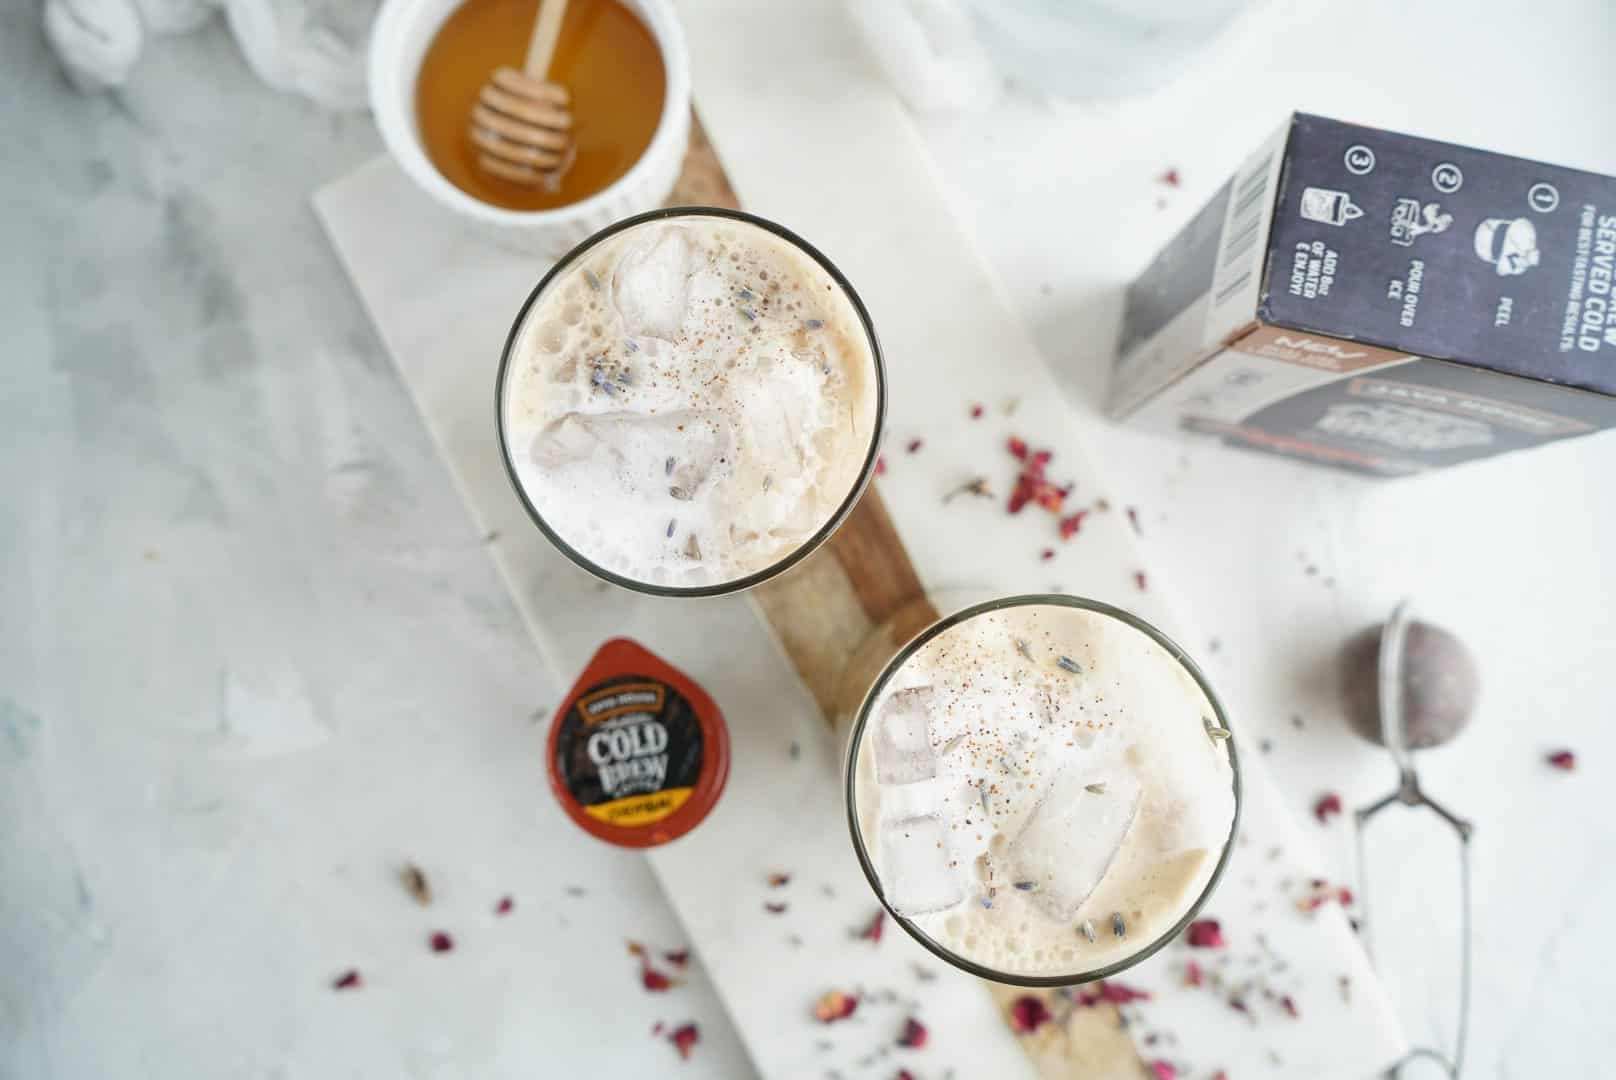 Iced Lavender Cold Brew Lattes from above